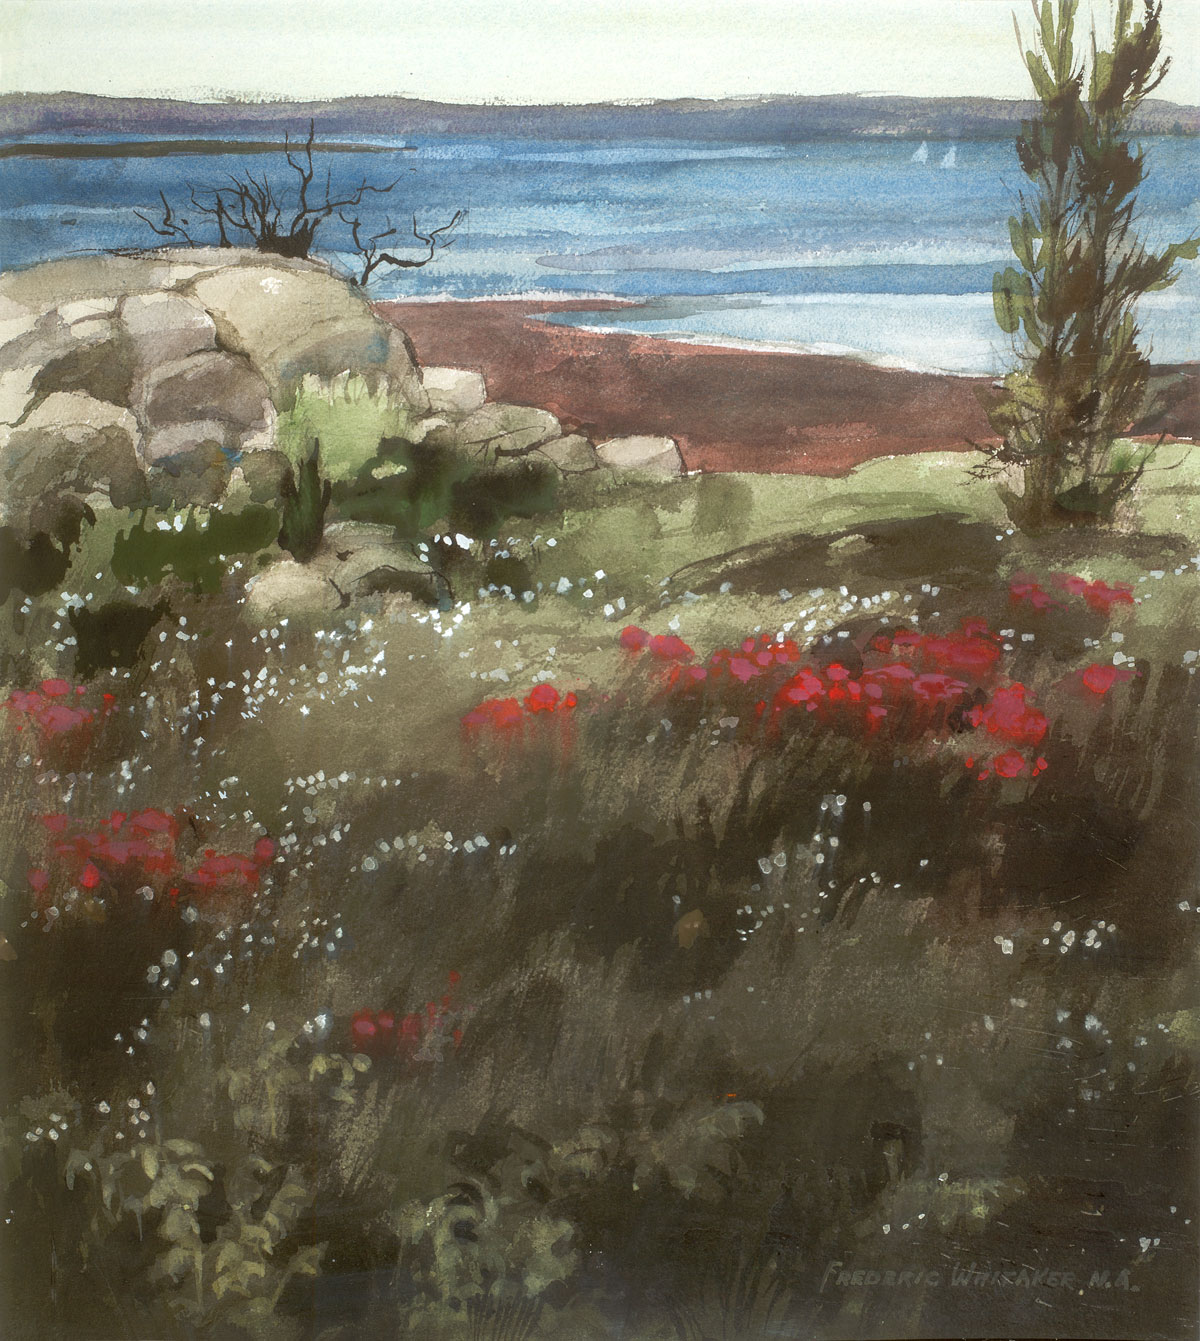 """""""Seaside Flower Garden"""" 1970 © Frederic Whitaker N.A. 22x24.5 inches Watercolor"""